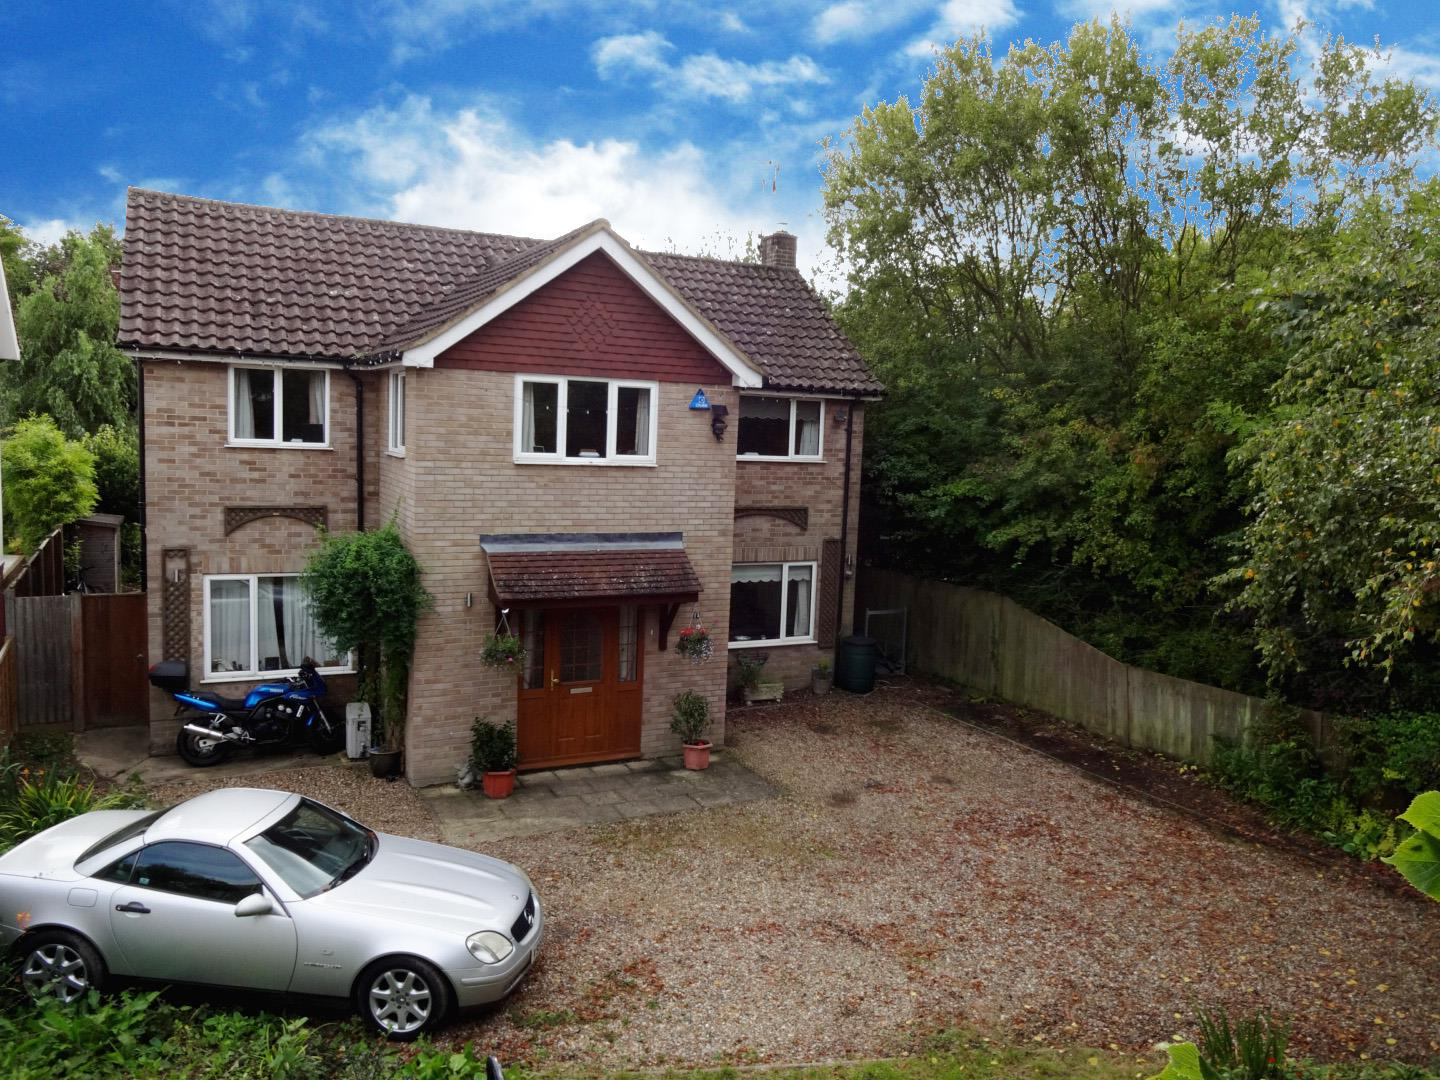 4 Bedrooms Detached House for sale in Limes Avenue, Horley